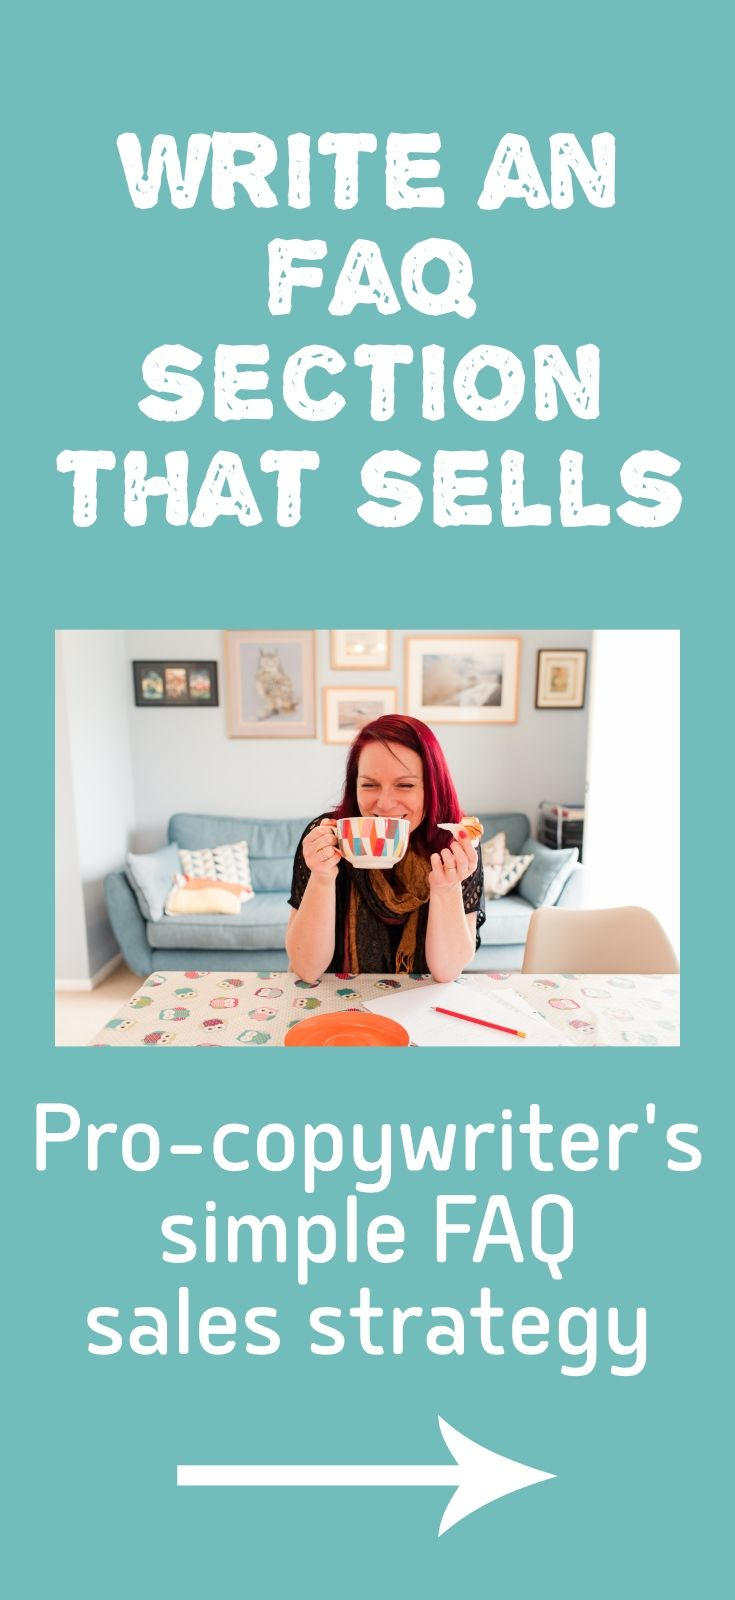 Follow this pro-copywriter's simple strategy to use your FAQs as a sales tool. Sales page tips, ideas and inspiration for entrepreneurs, solopreneurs and small business owners.